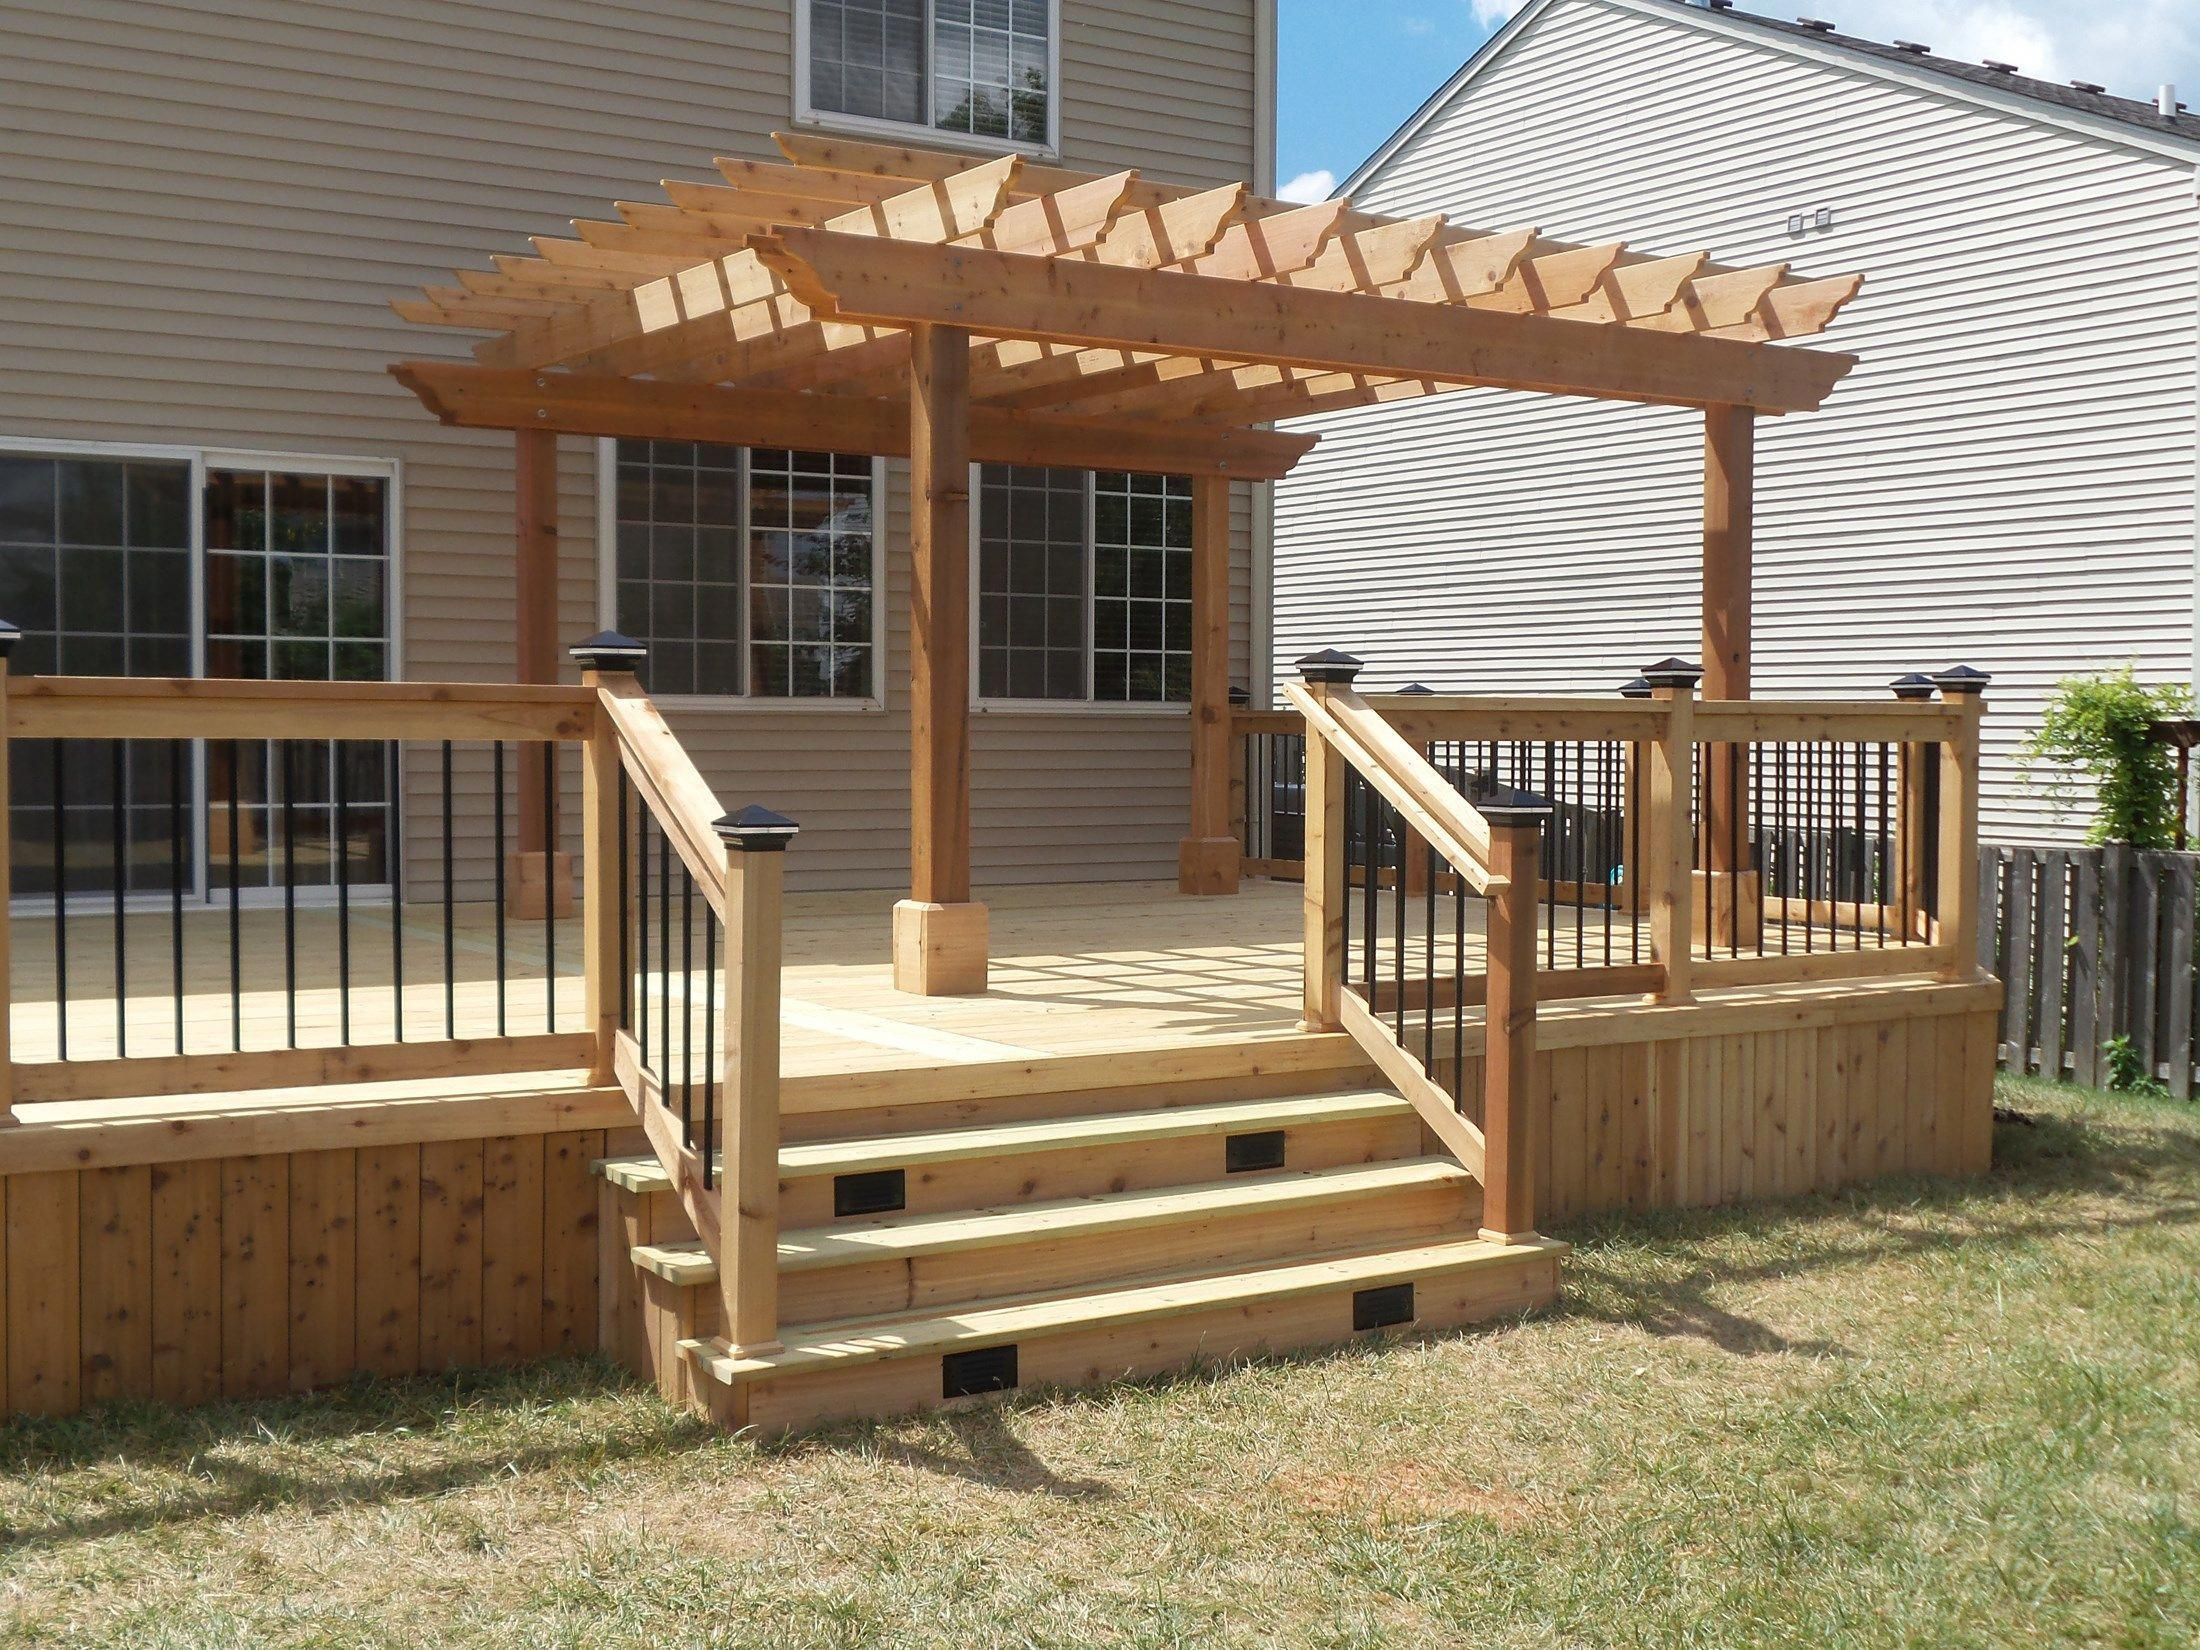 cedar-deck-pergola-decks-with-timber-build-on-existing-outdoor-kits-basic-trelli.jpg